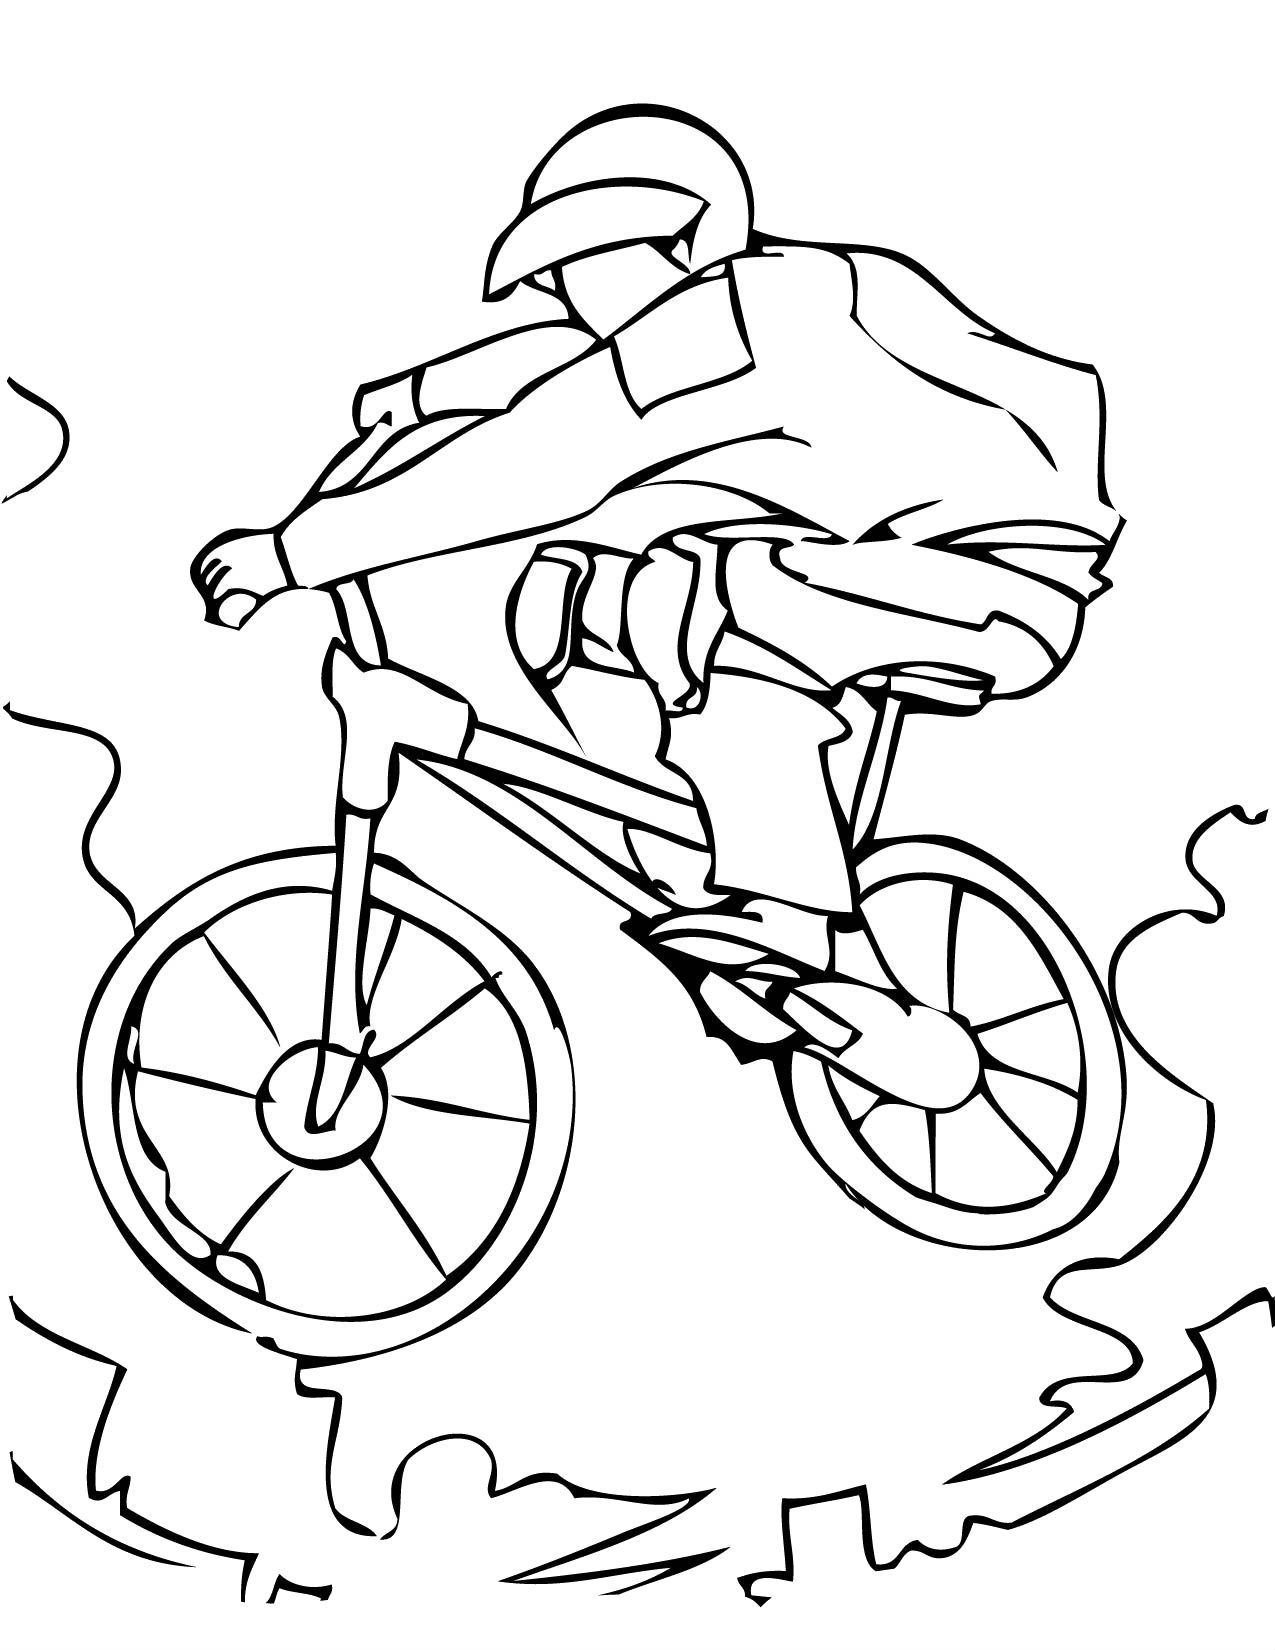 Play Bike In Summer Coloring Pages For Kids Bca Printable Summer Sports Coloring Pages For K Sports Coloring Pages Coloring Pictures For Kids Coloring Pages